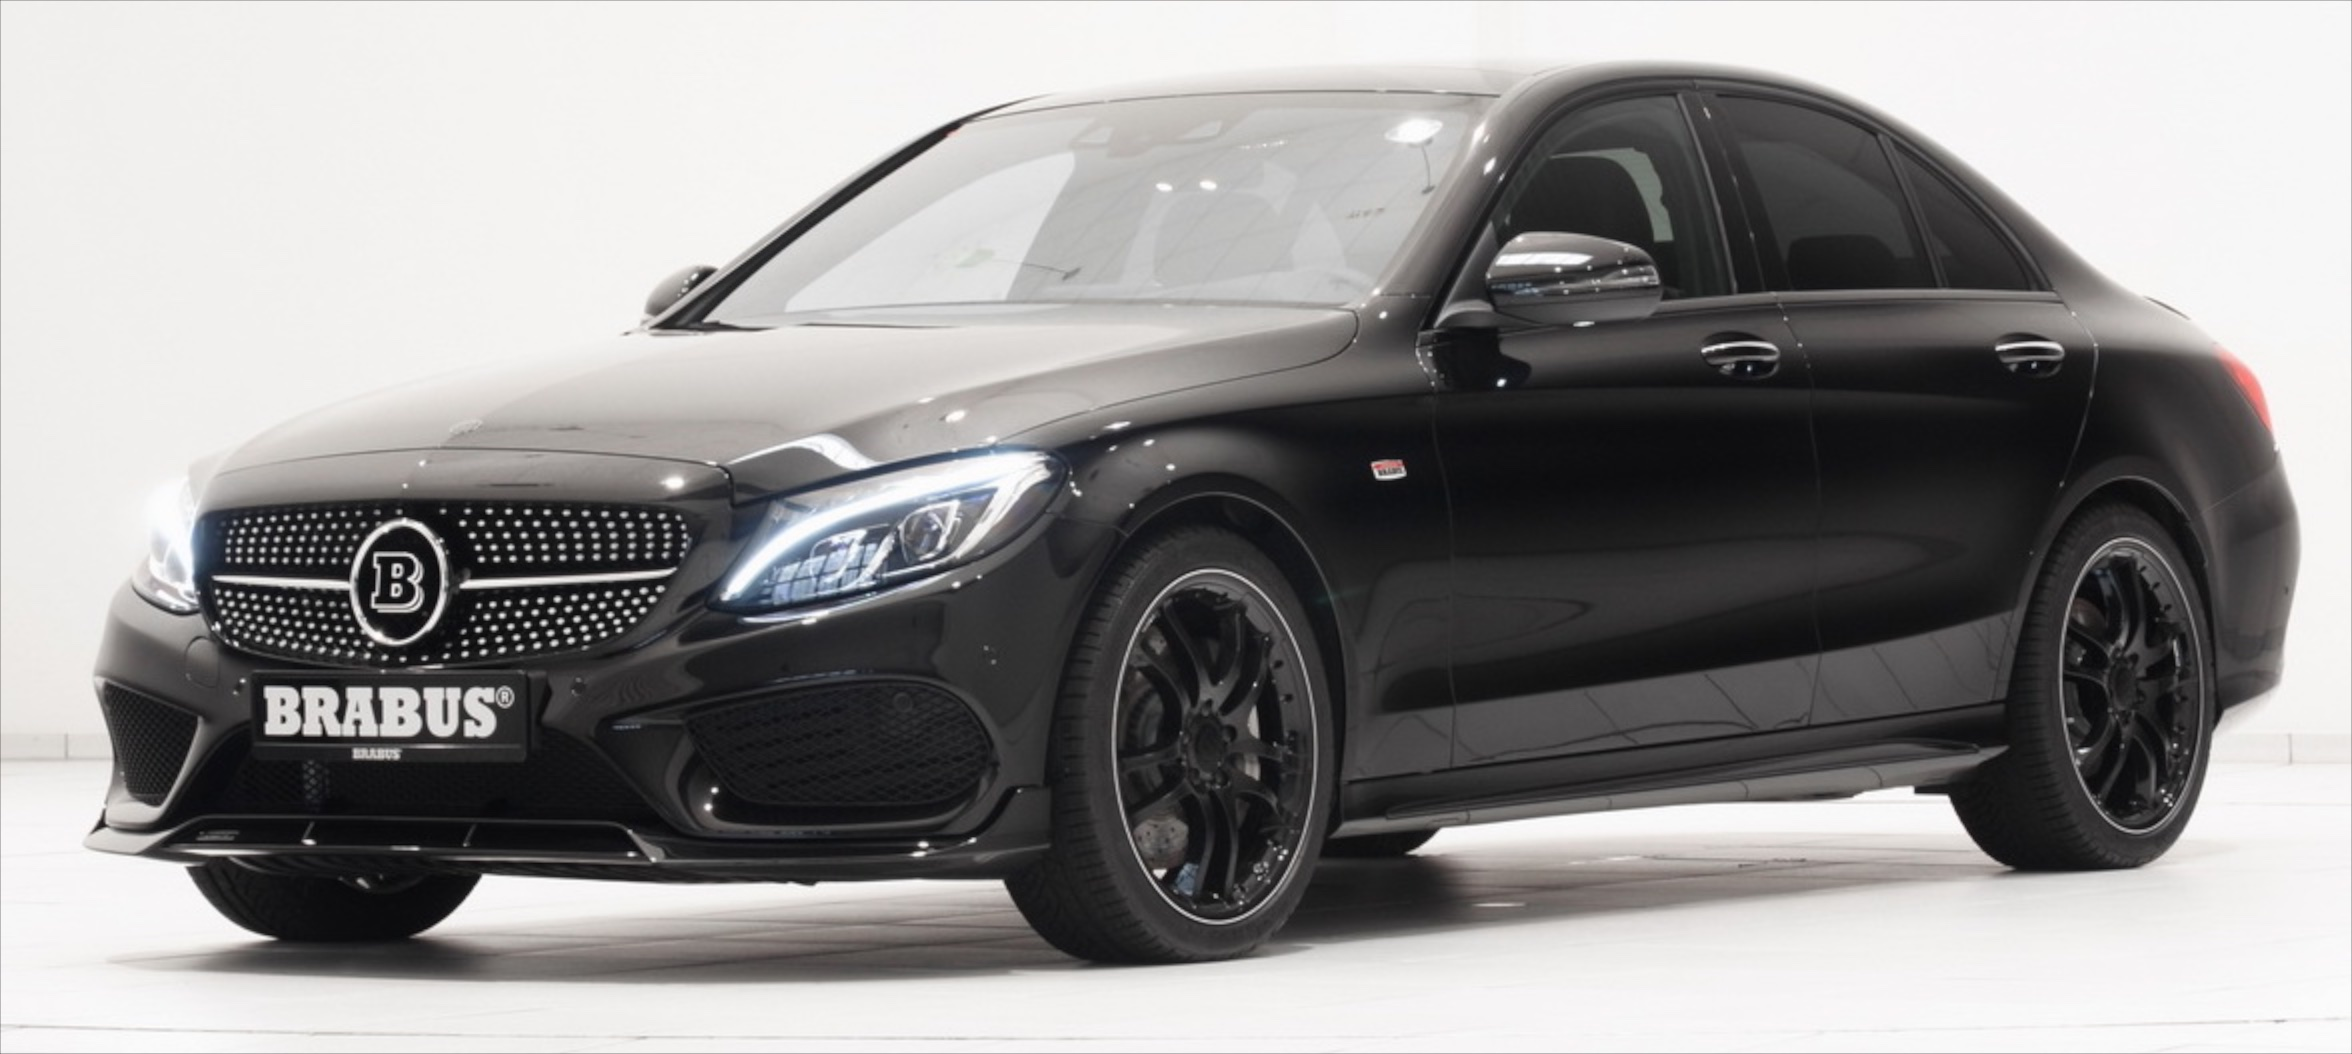 brabus tunes the merc c450 amg to 410 hp 570 nm and confirms the mercedes amg c43 badge. Black Bedroom Furniture Sets. Home Design Ideas